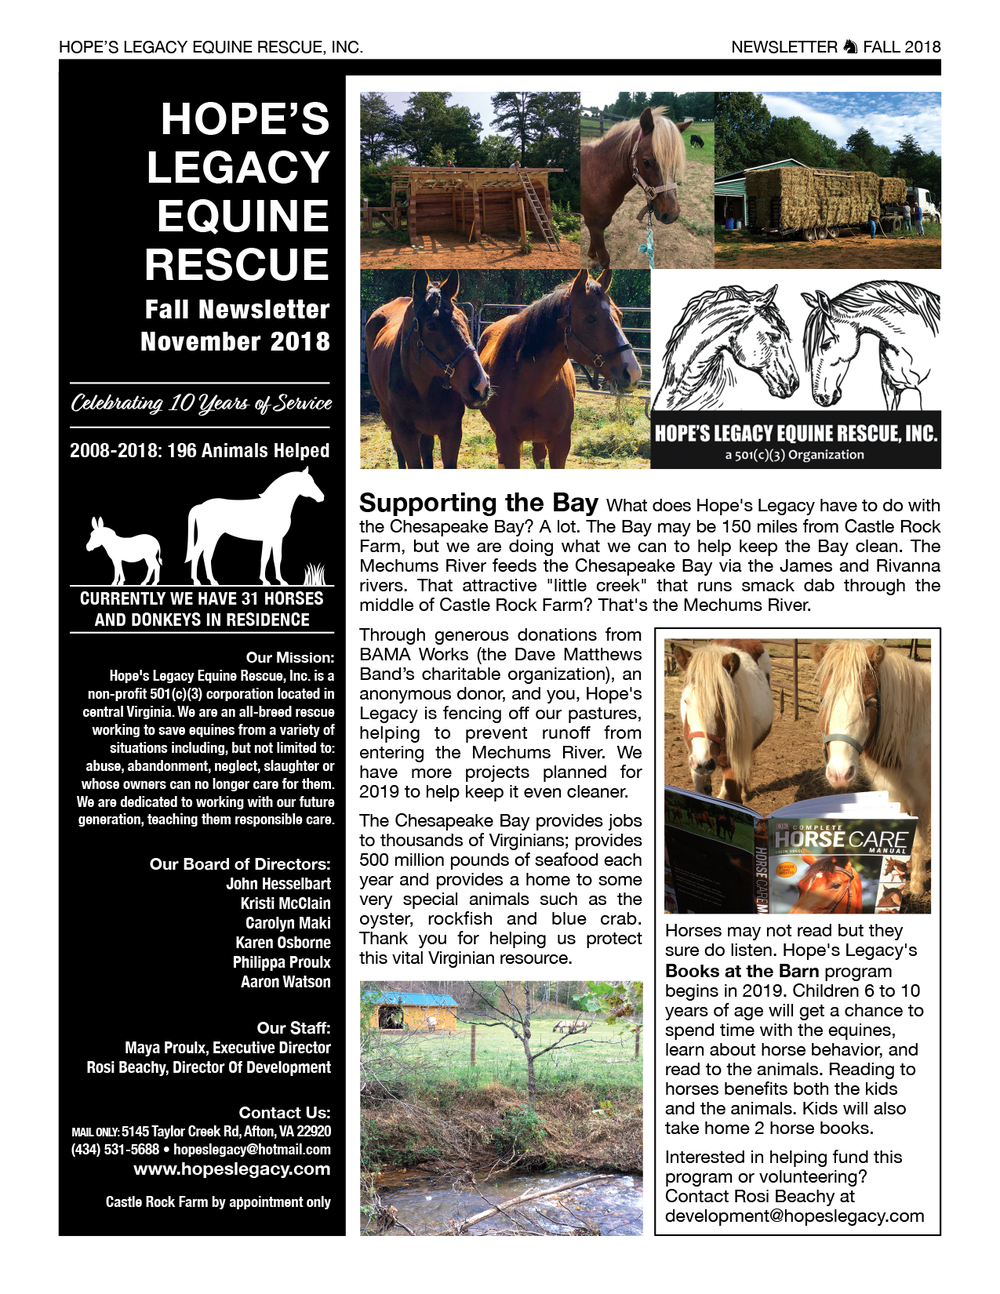 Hopes Legacy_Fall 2018 Newsletter_pg 1.png